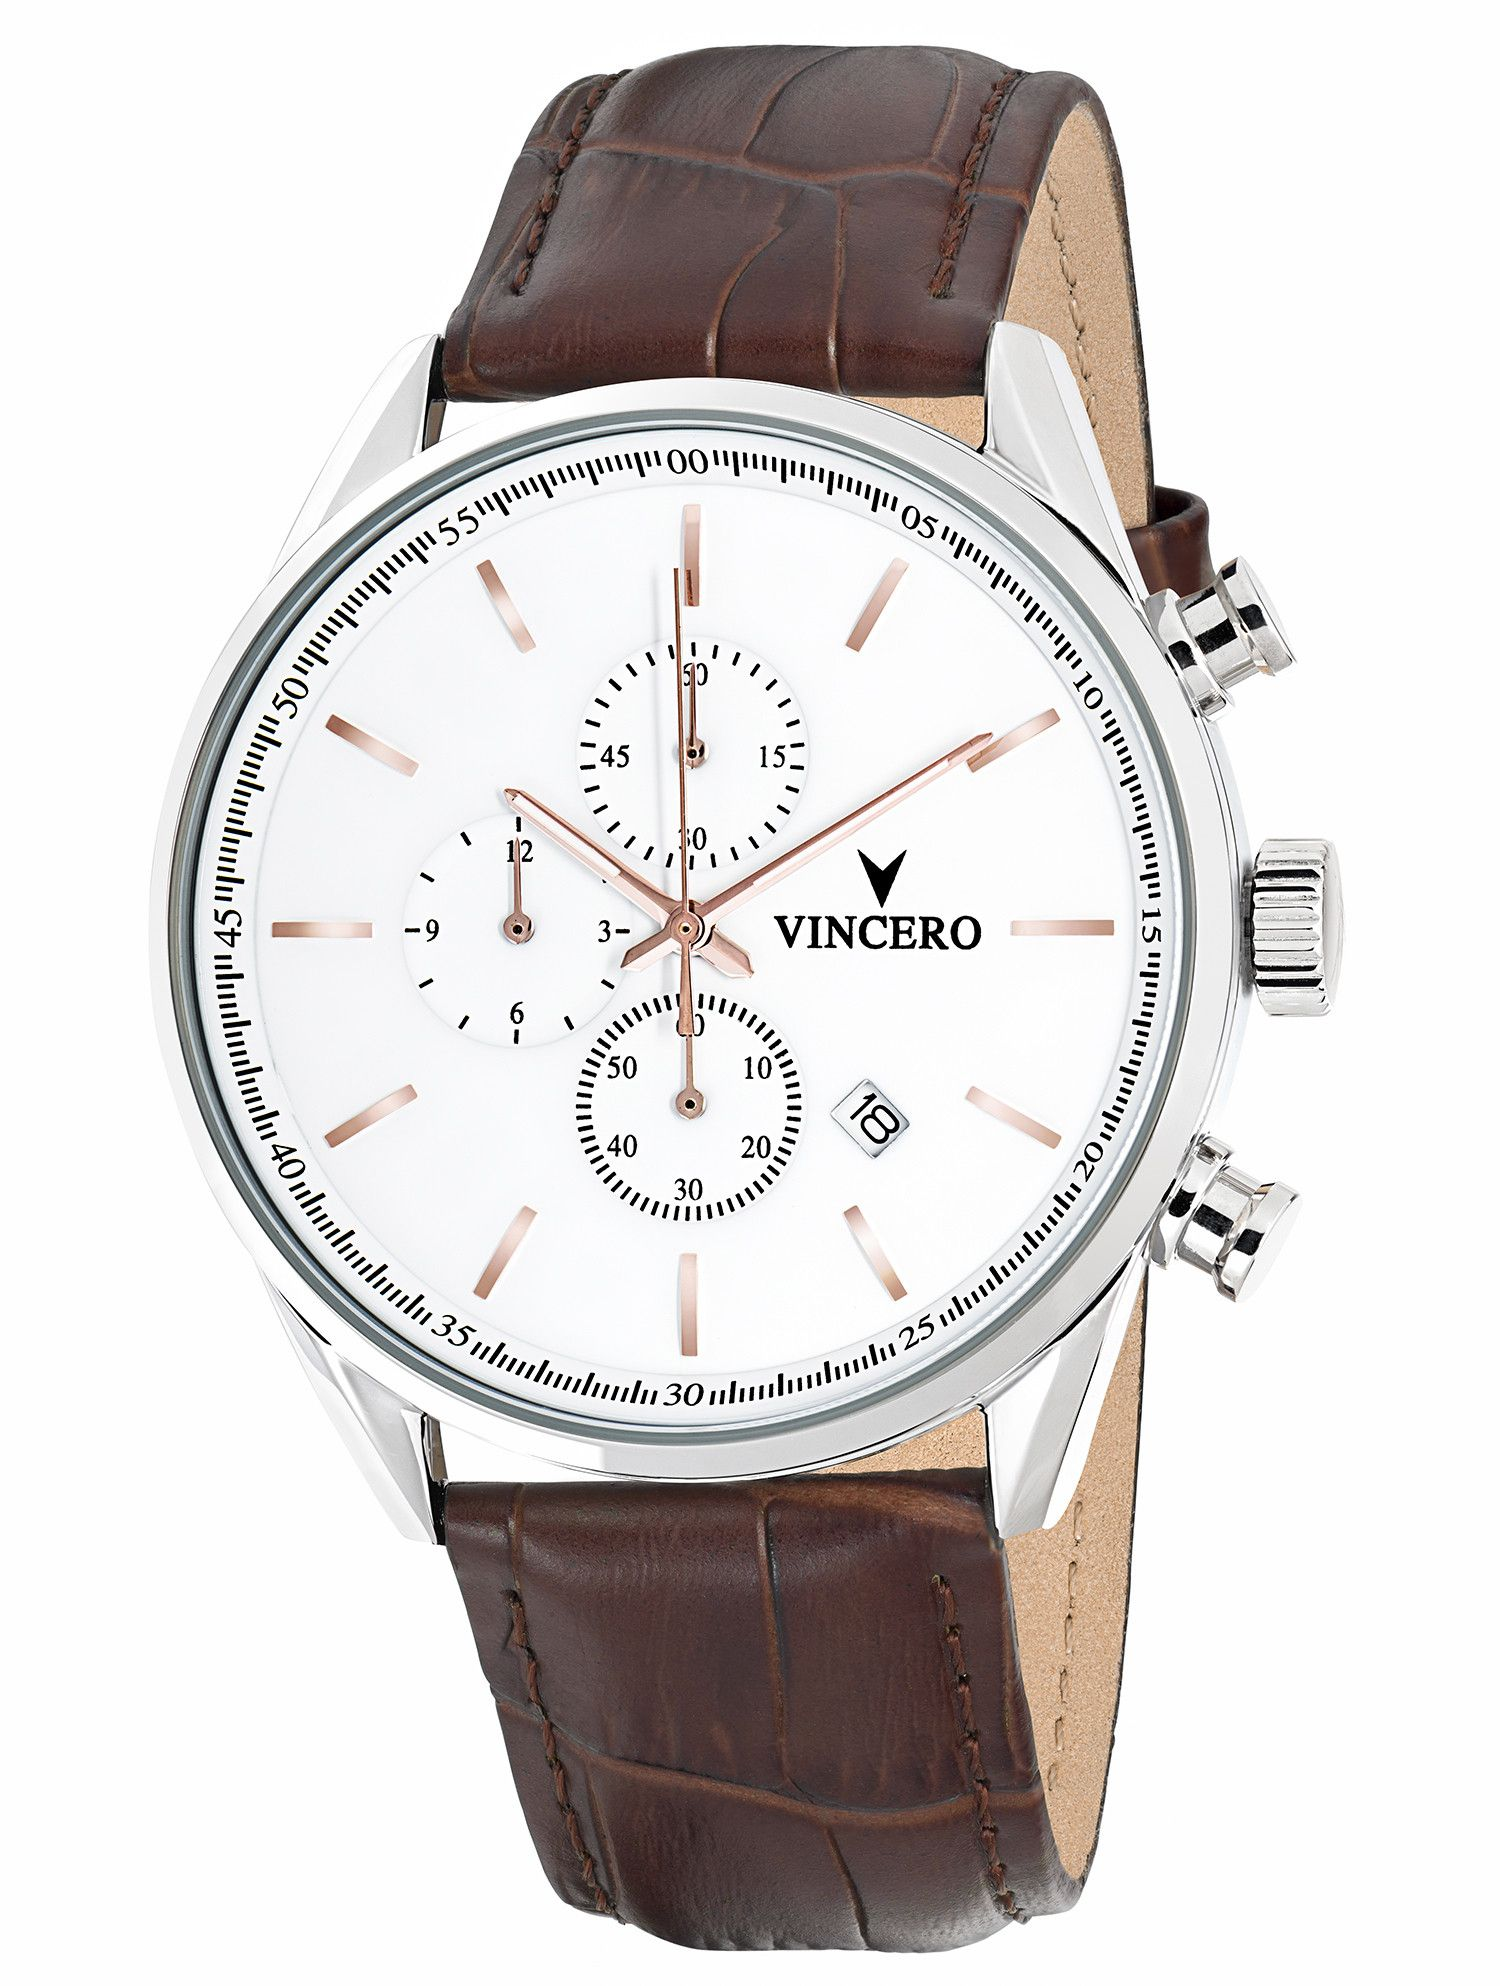 The Chrono S Rose Gold Luxury Watches For Men Watches For Men Brown Leather Band Watch